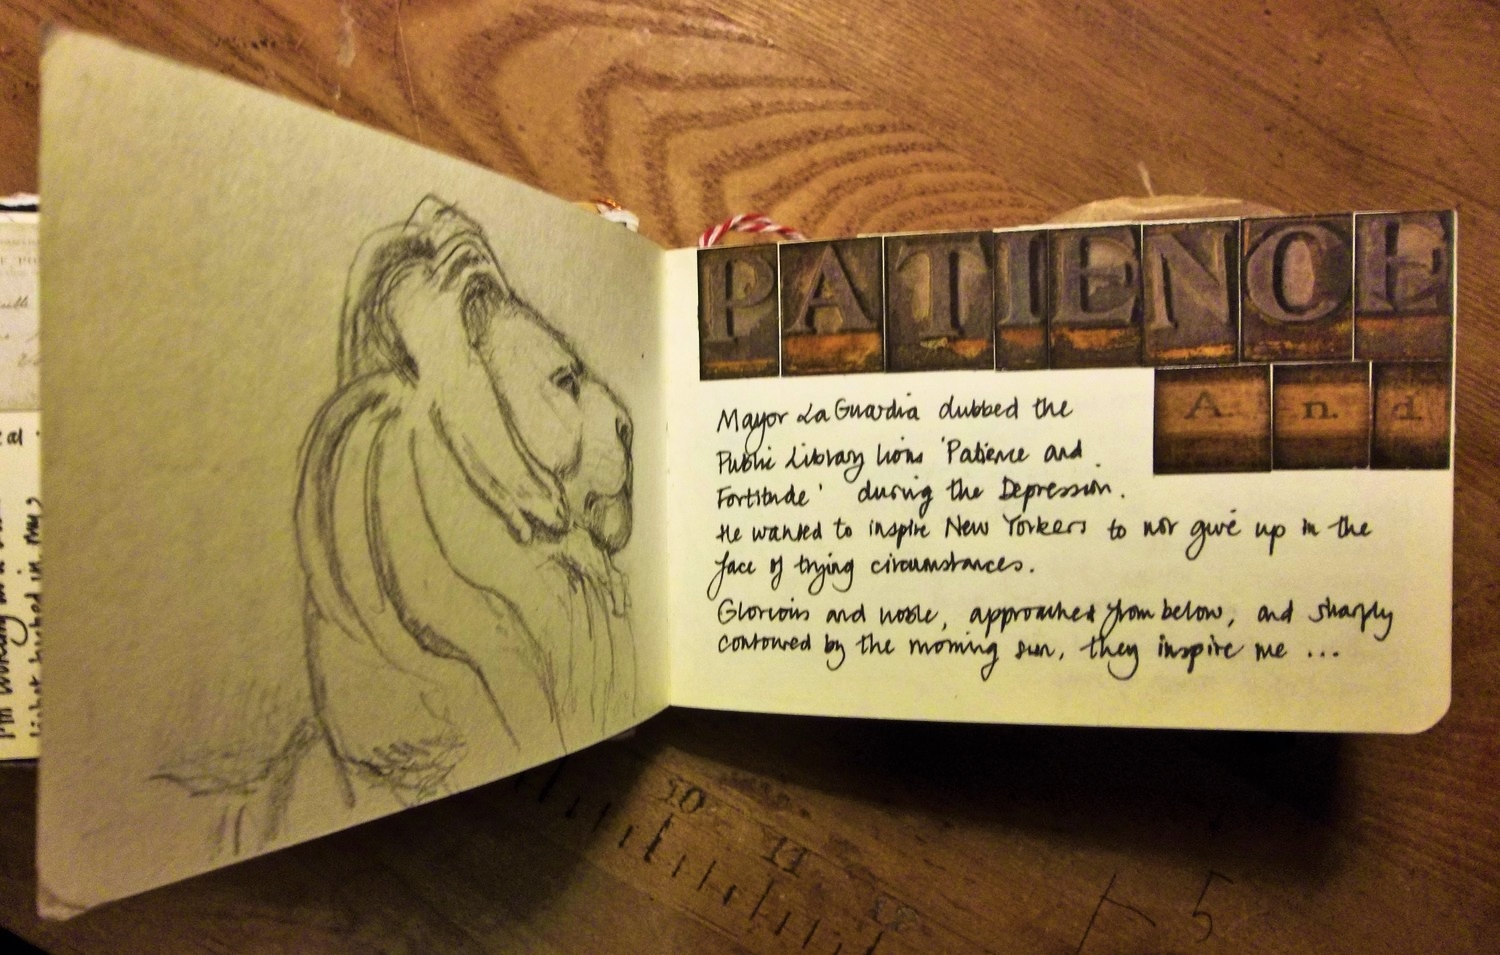 The New York Library Lion: Patience. Michelle Geffken. Paperblogging.com: Sketchingbooking you can do!